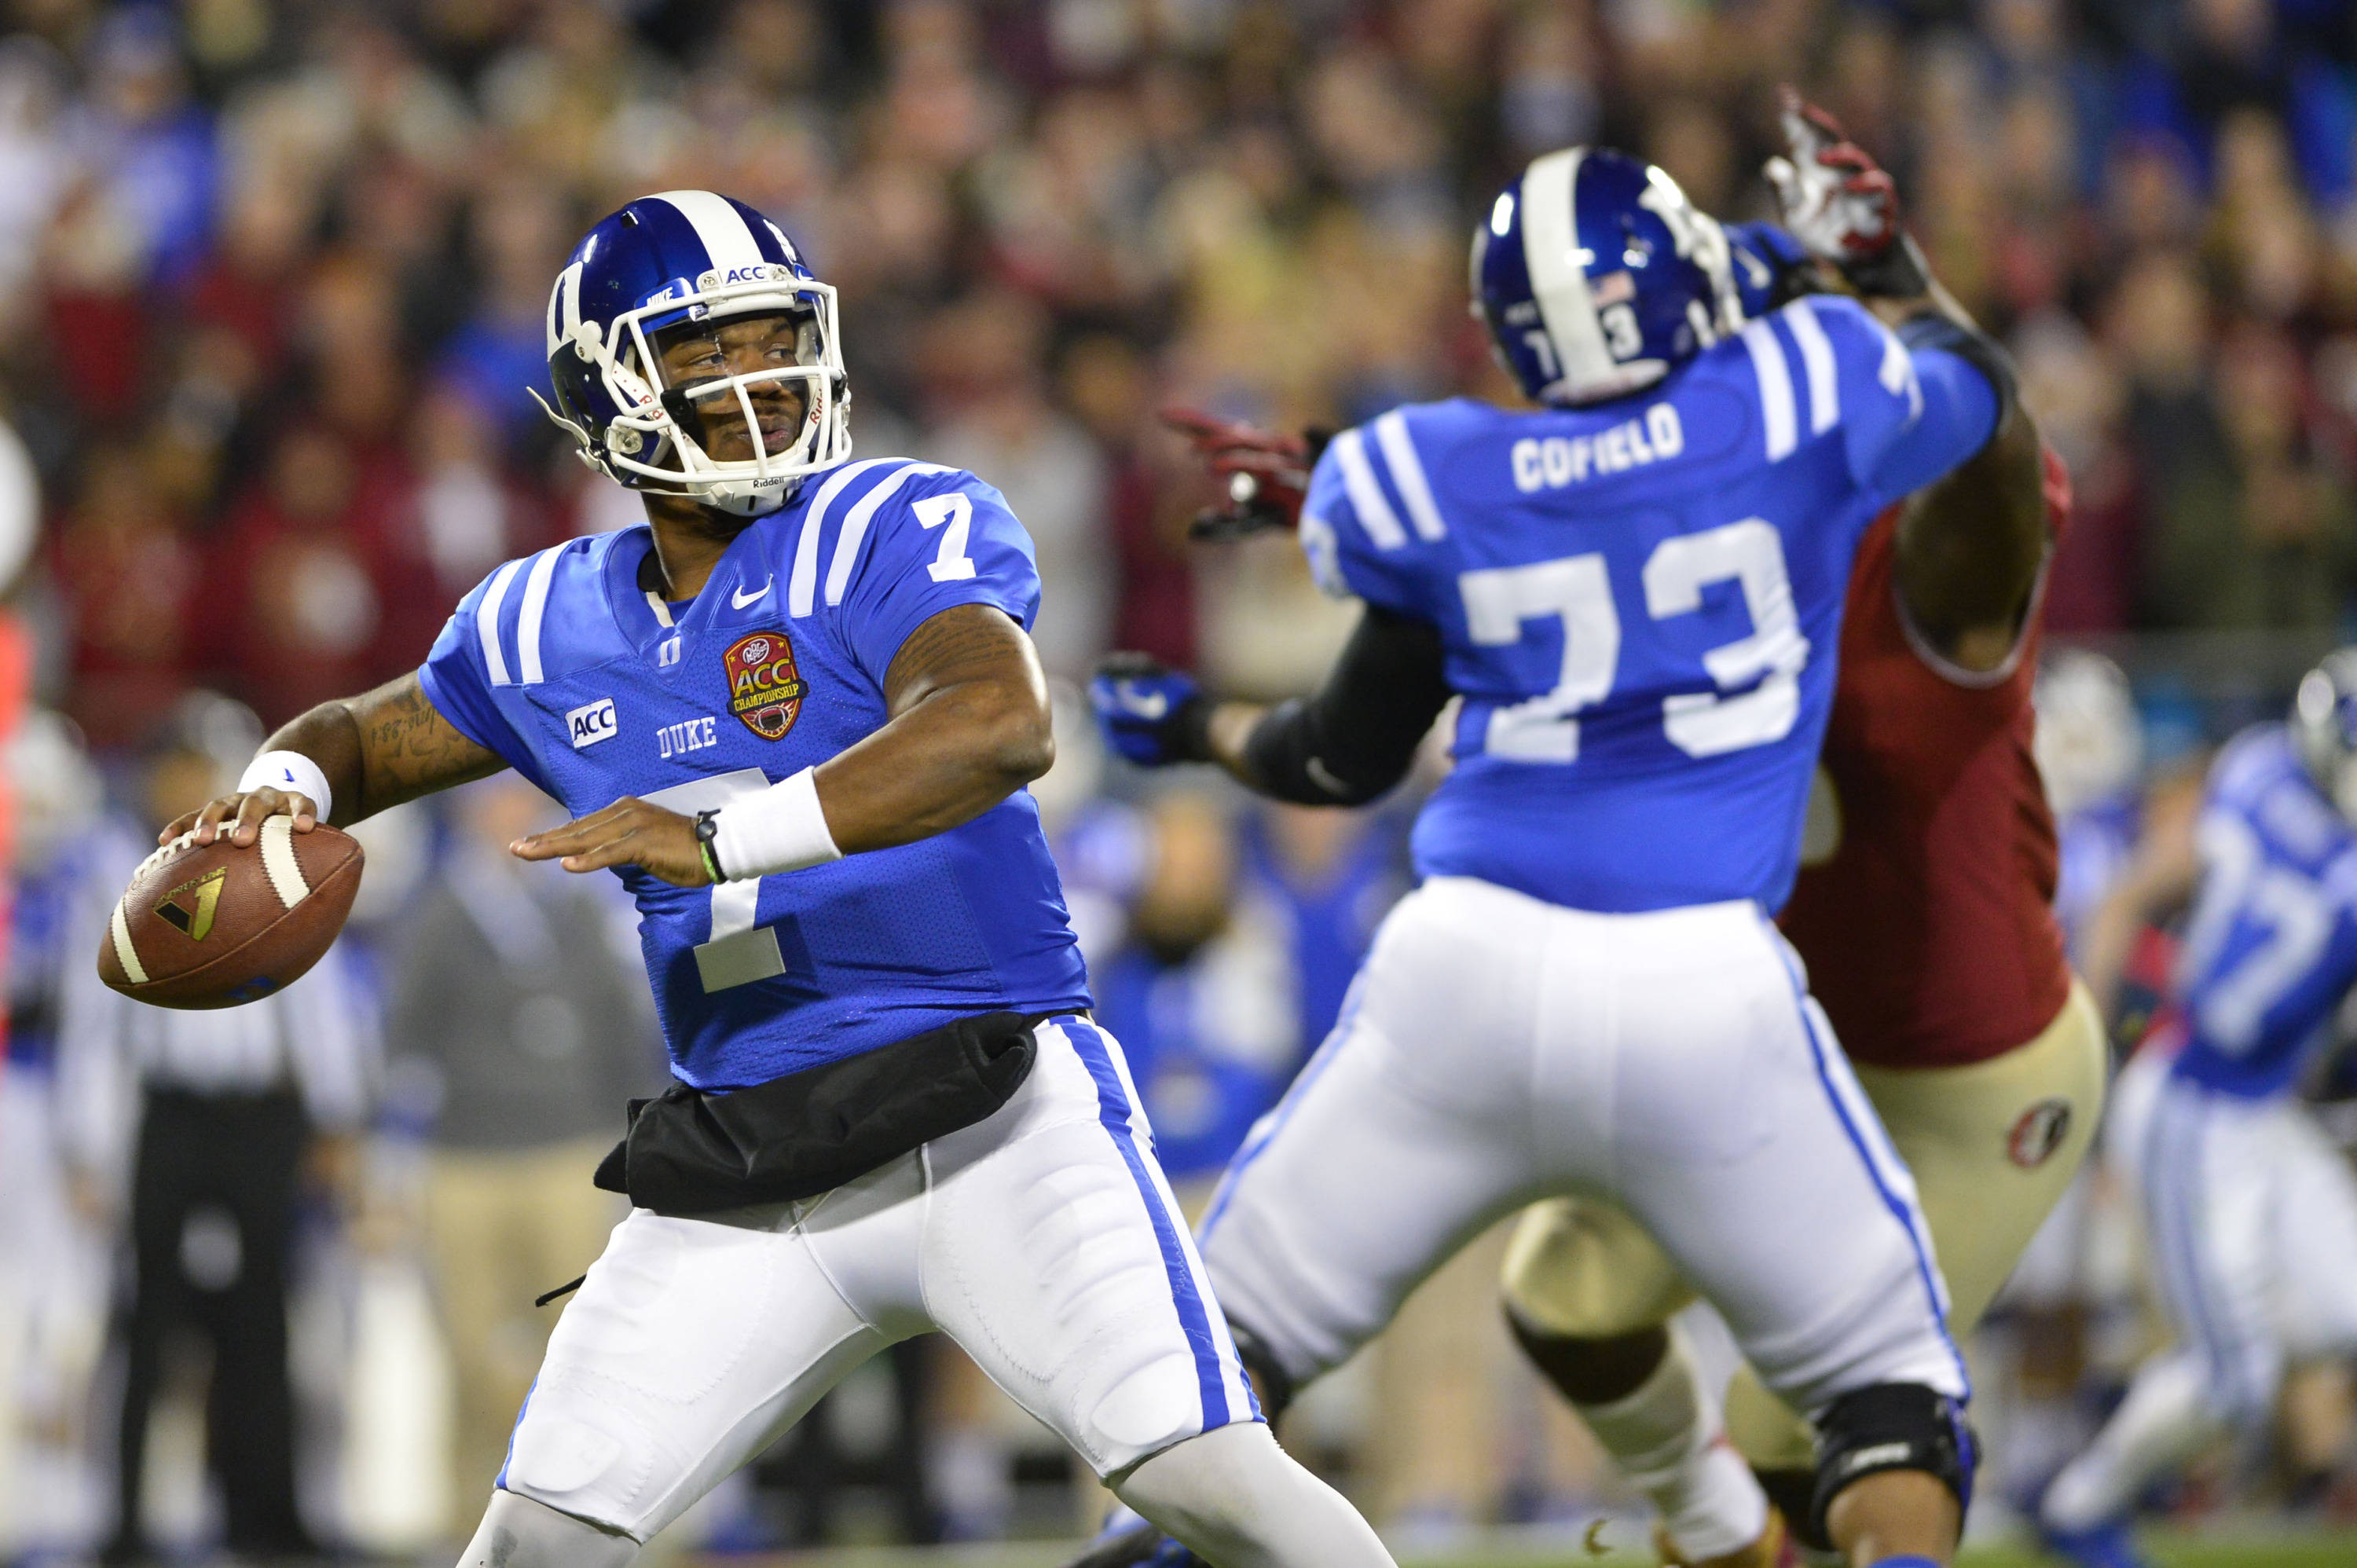 Dec 7, 2013; Charlotte, NC, USA; Duke Blue Devils quarterback Anthony Boone (7) passes the ball as offensive tackle Takoby Cofield (73) blocks in the first quarter at Bank of America Stadium. Mandatory Credit: Bob Donnan-USA TODAY Sports